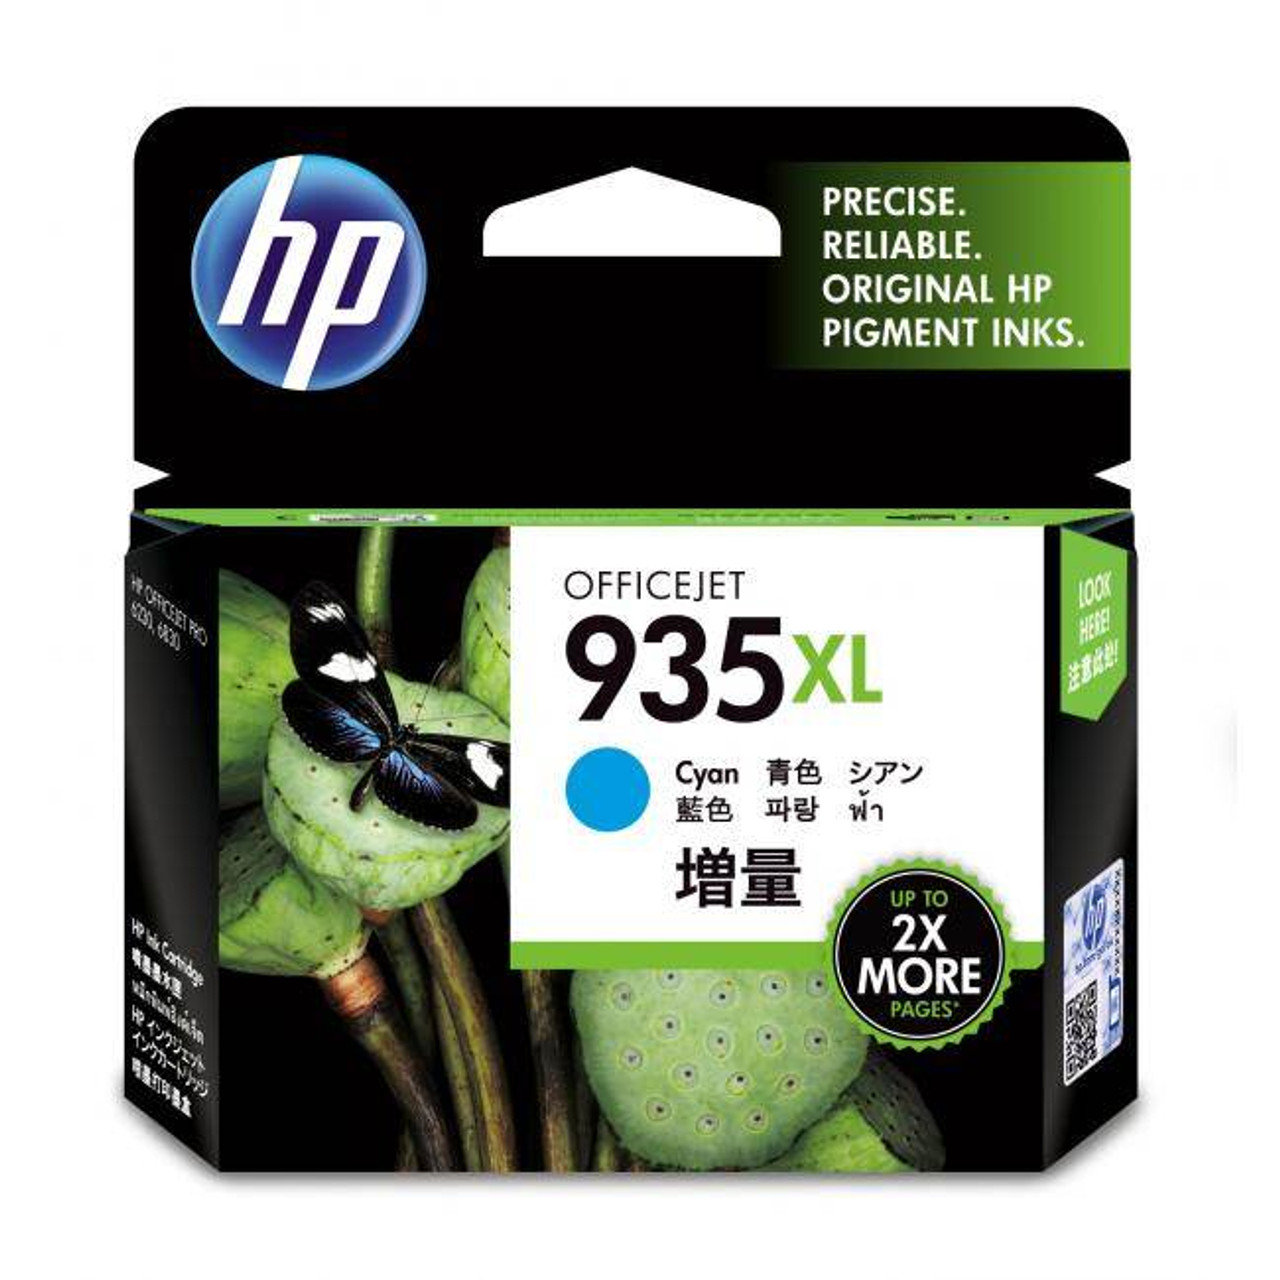 Image for HP #935 Cyan XL Ink C2P24AA 825 pages Cyan CX Computer Superstore